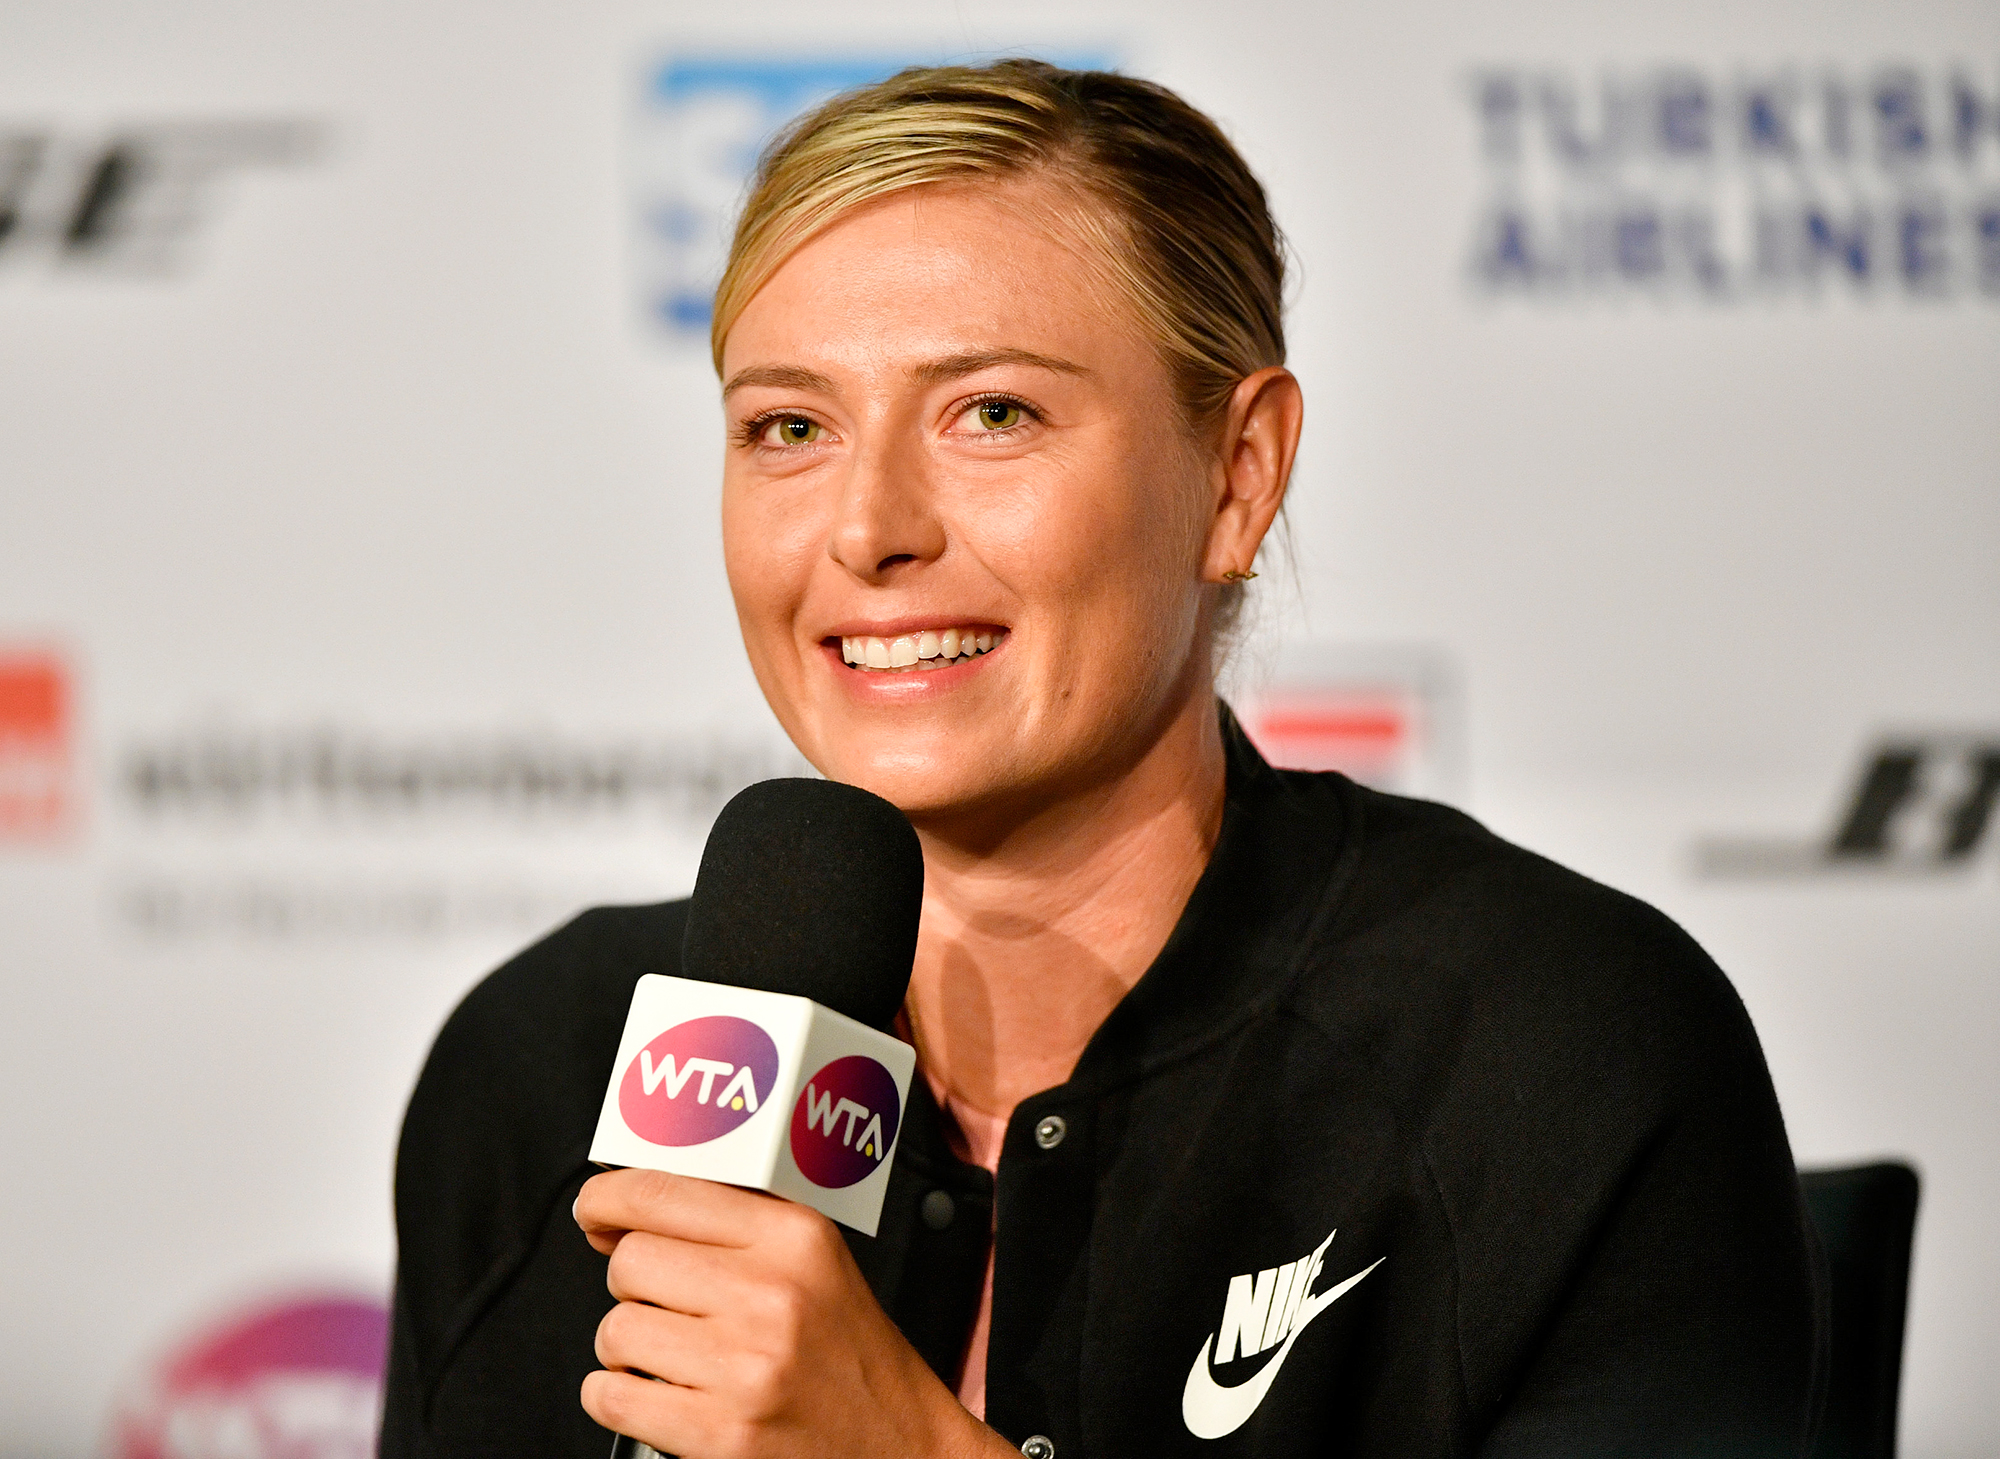 Maria Sharapova press conference during the WTA Porsche Tennis Grand Prix at the Porsche Arena, Stuttgart, Germany - 28 Apr 2017